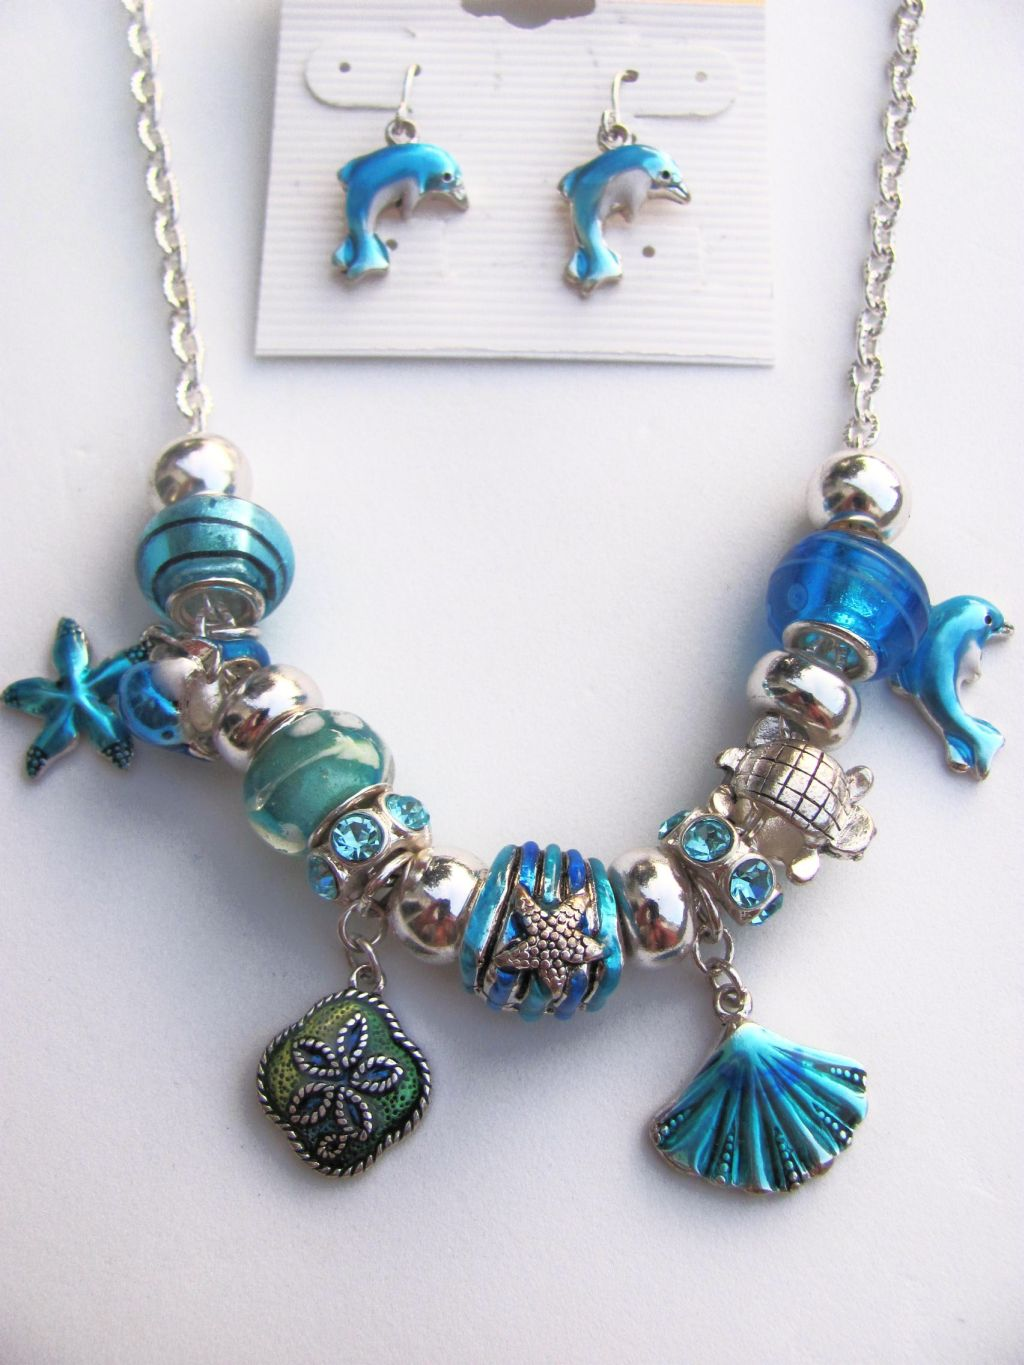 Pandora Inspired Blue Nautical Charm Dolphin Turtle Necklace Earrings Sea Star